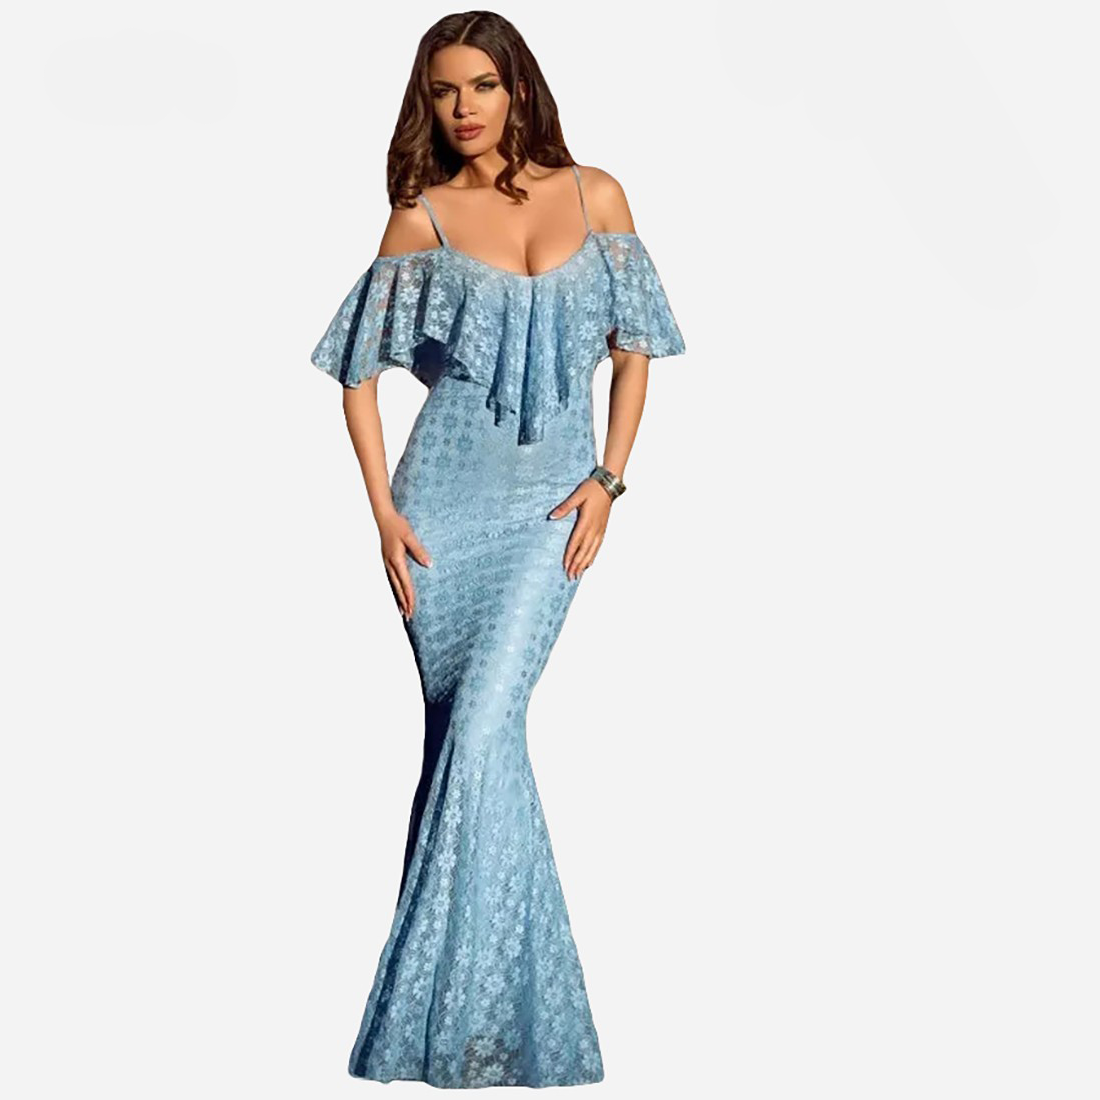 FRILL OFF SHOULDER MERMAID DRESS